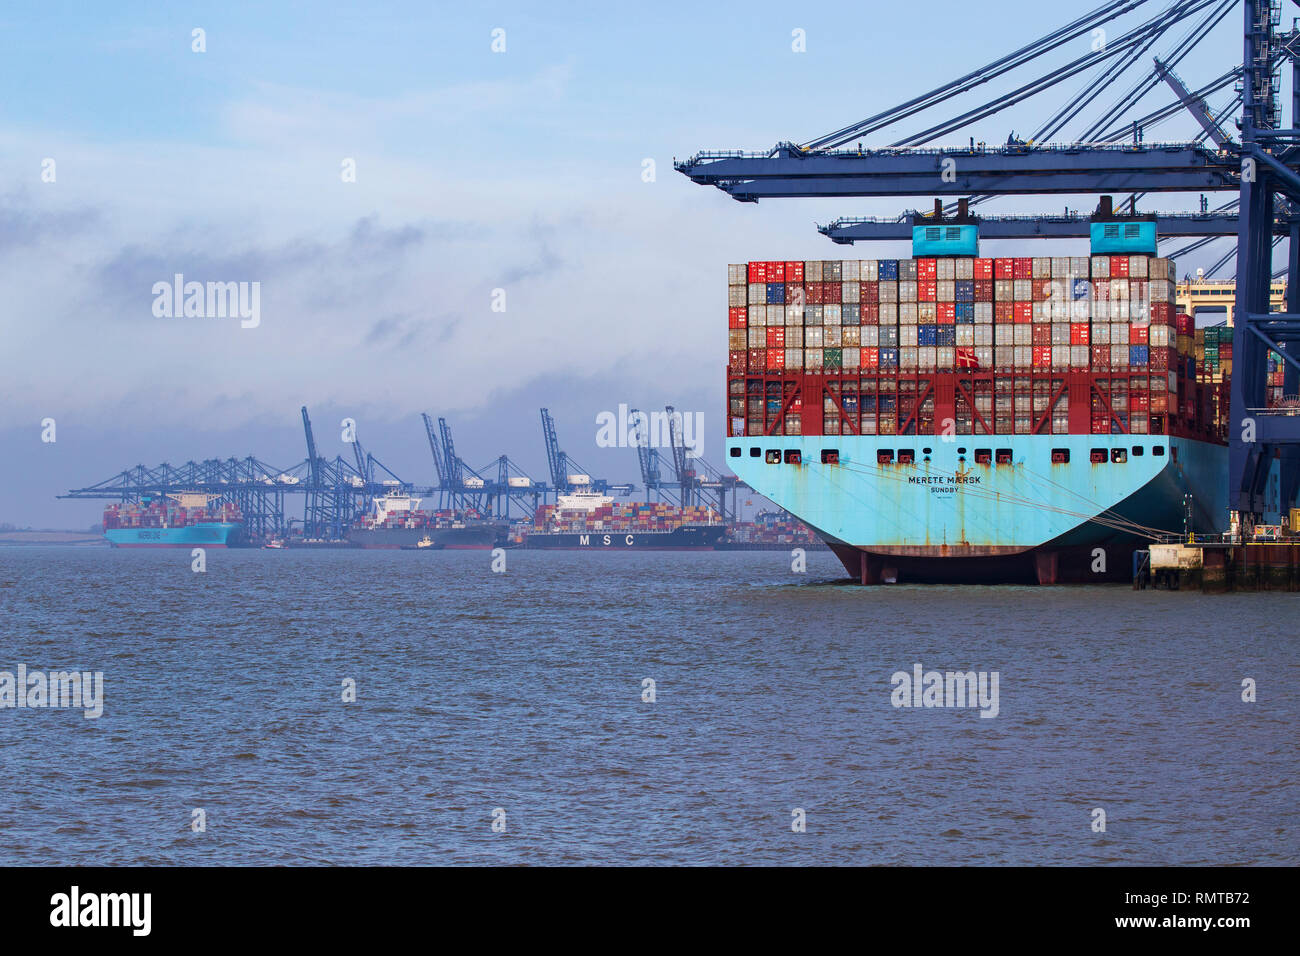 Large Ocean Going Maersk Shipping Container Ship Docked at Port of Felixstowe - Stock Image